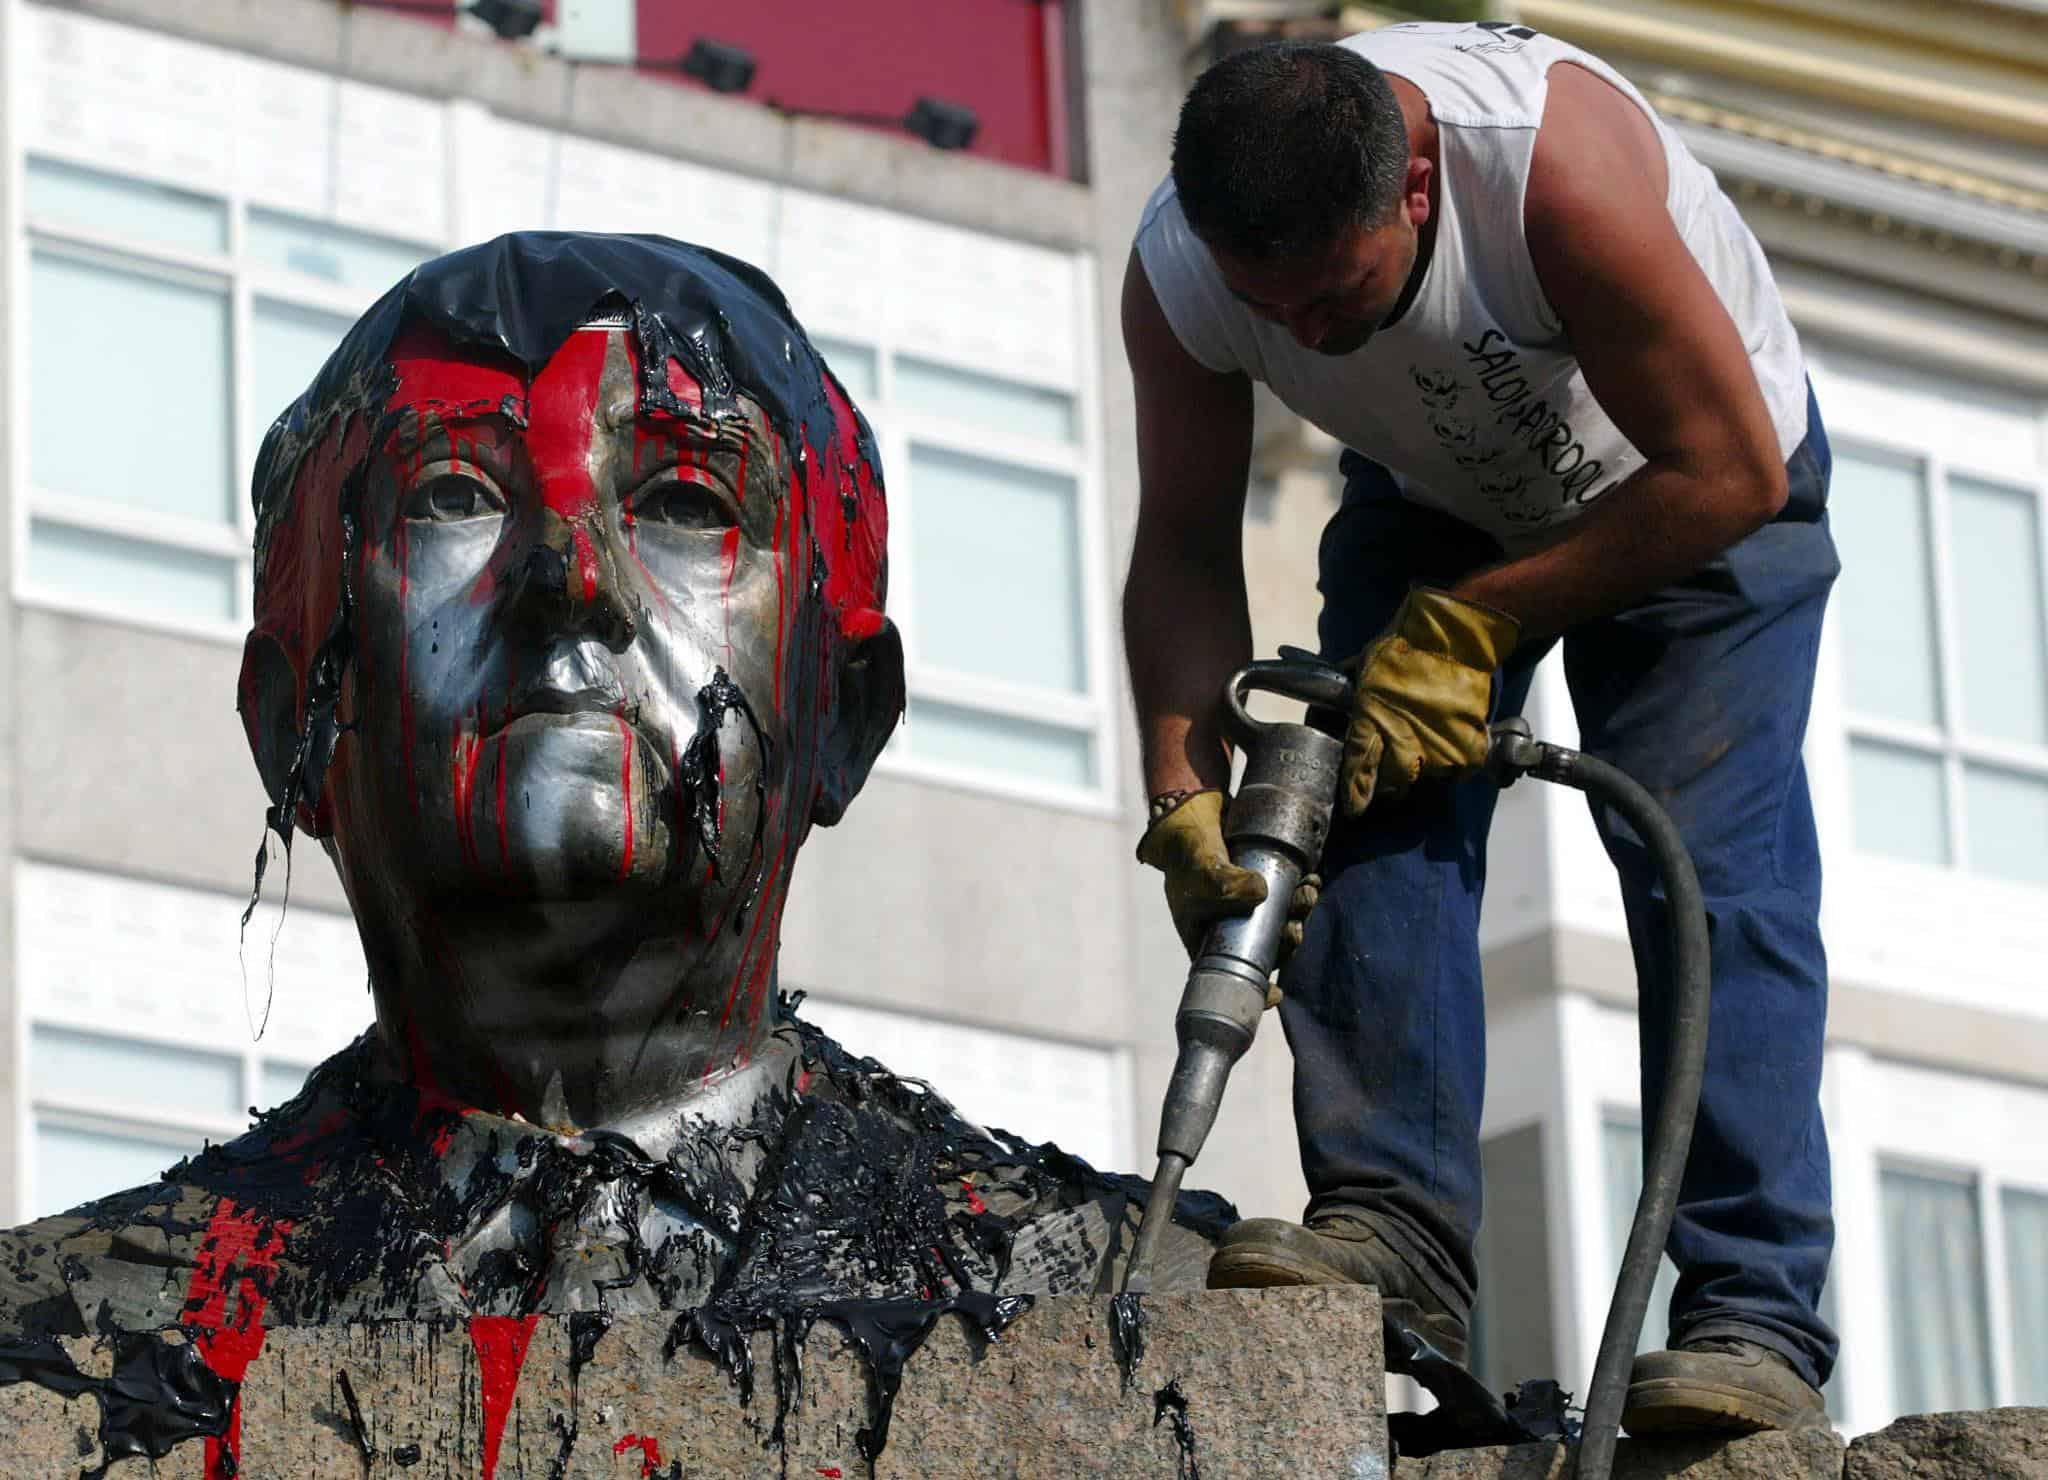 Franco bust removed